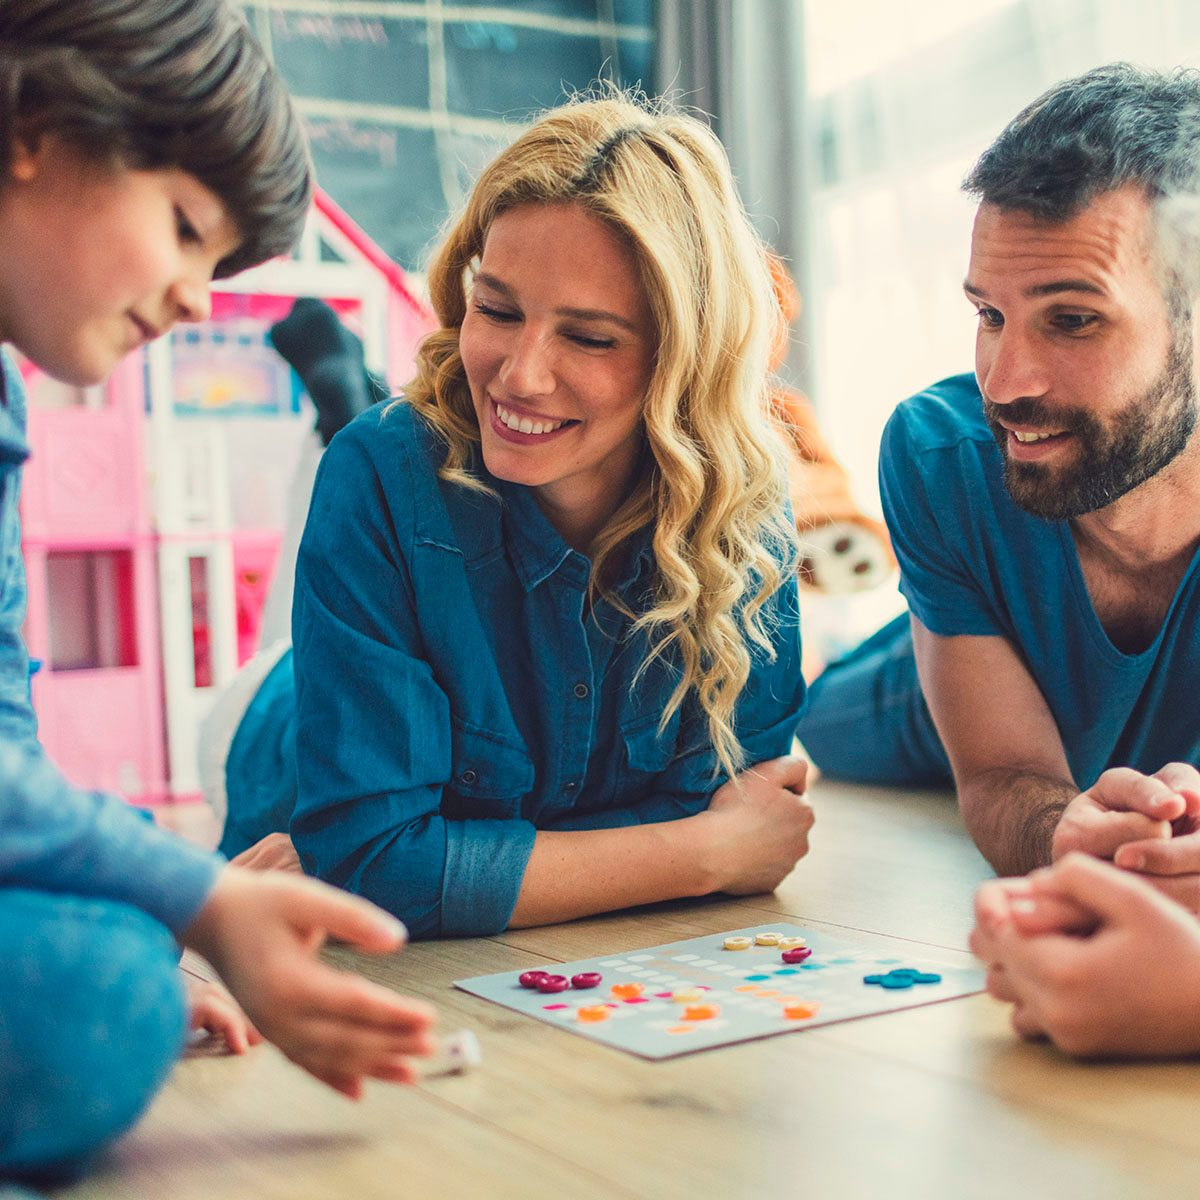 Family Playing Board Game At Home - new years activities for kids